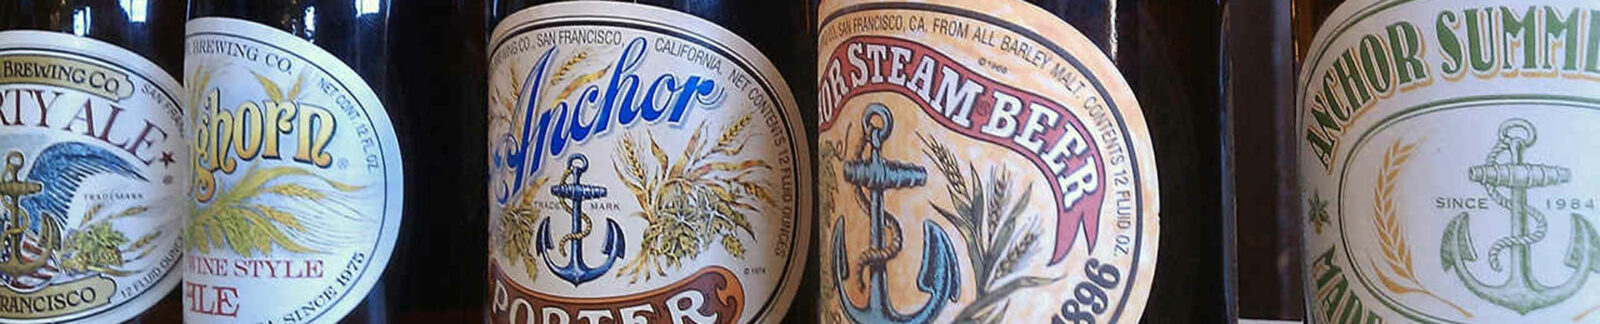 Beer from Anchor Brewing